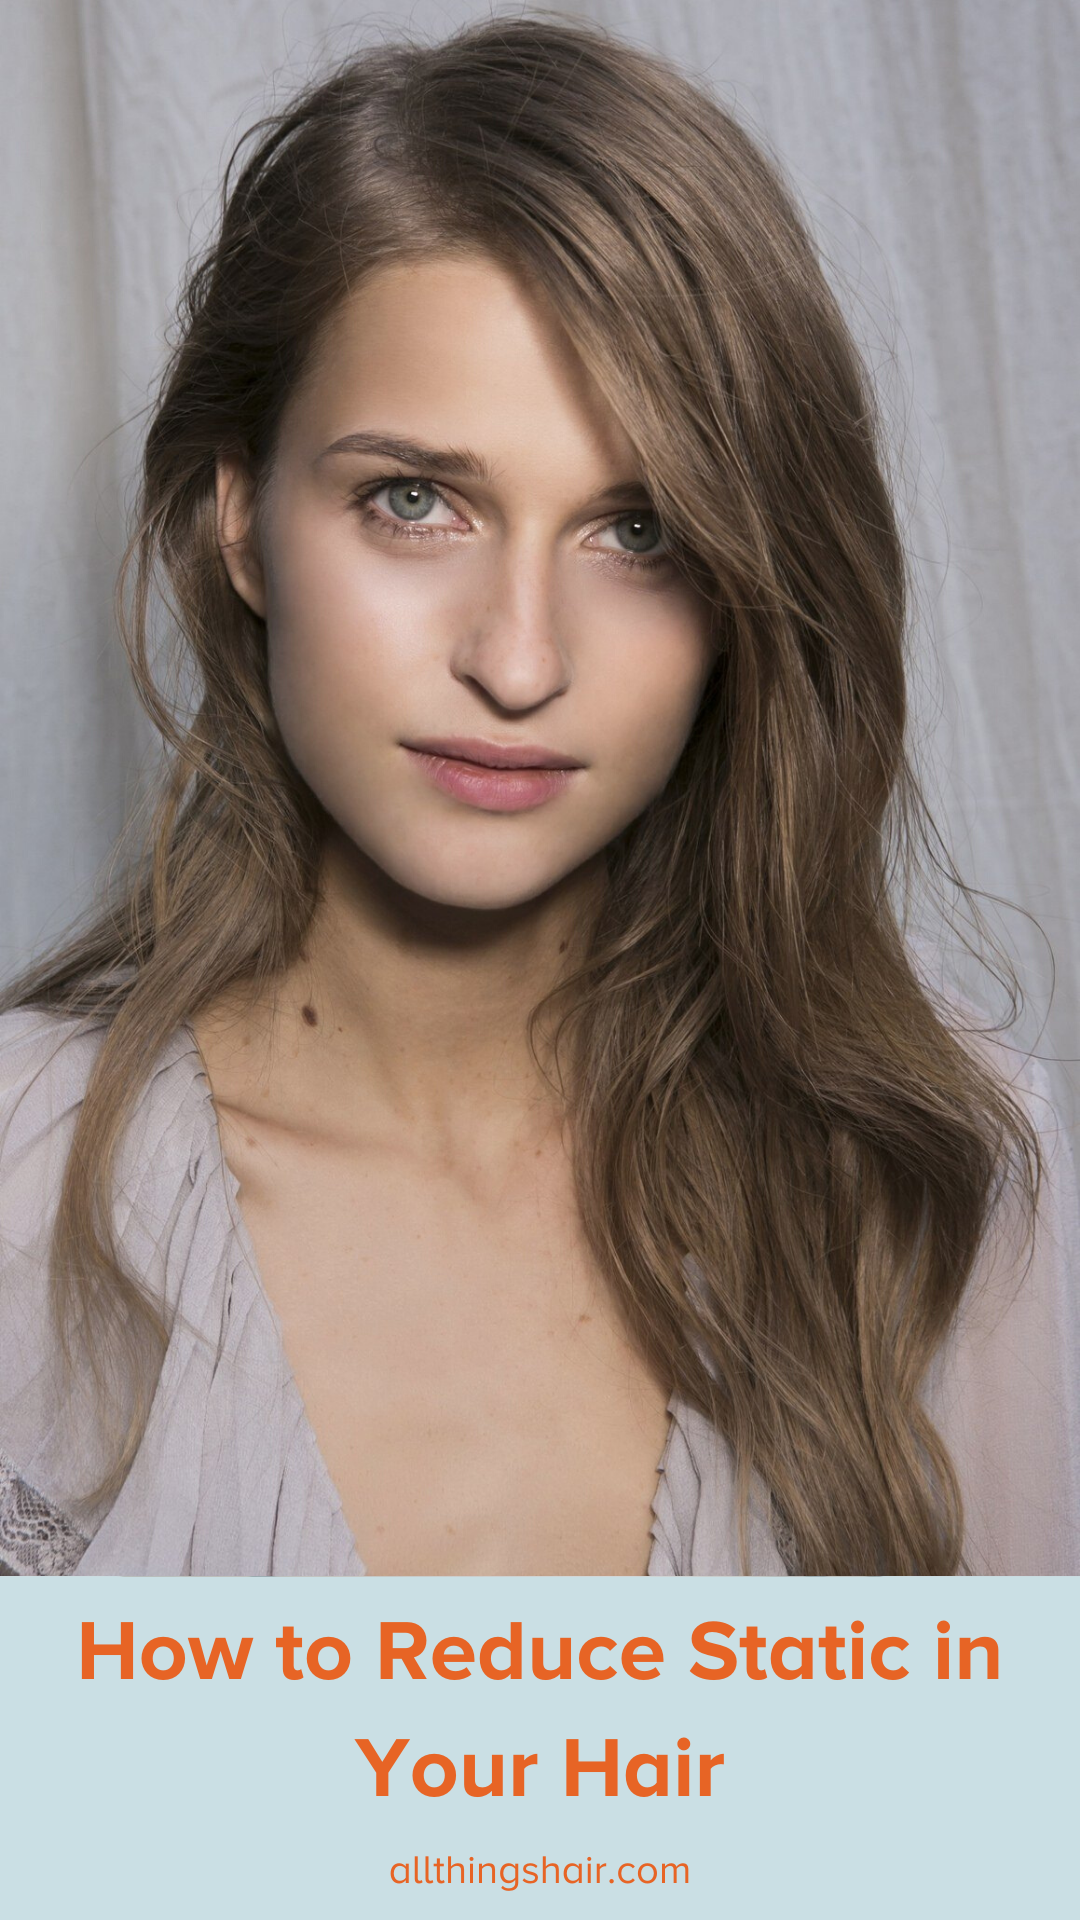 How to Get Static Out of Hair in the Winter (With images